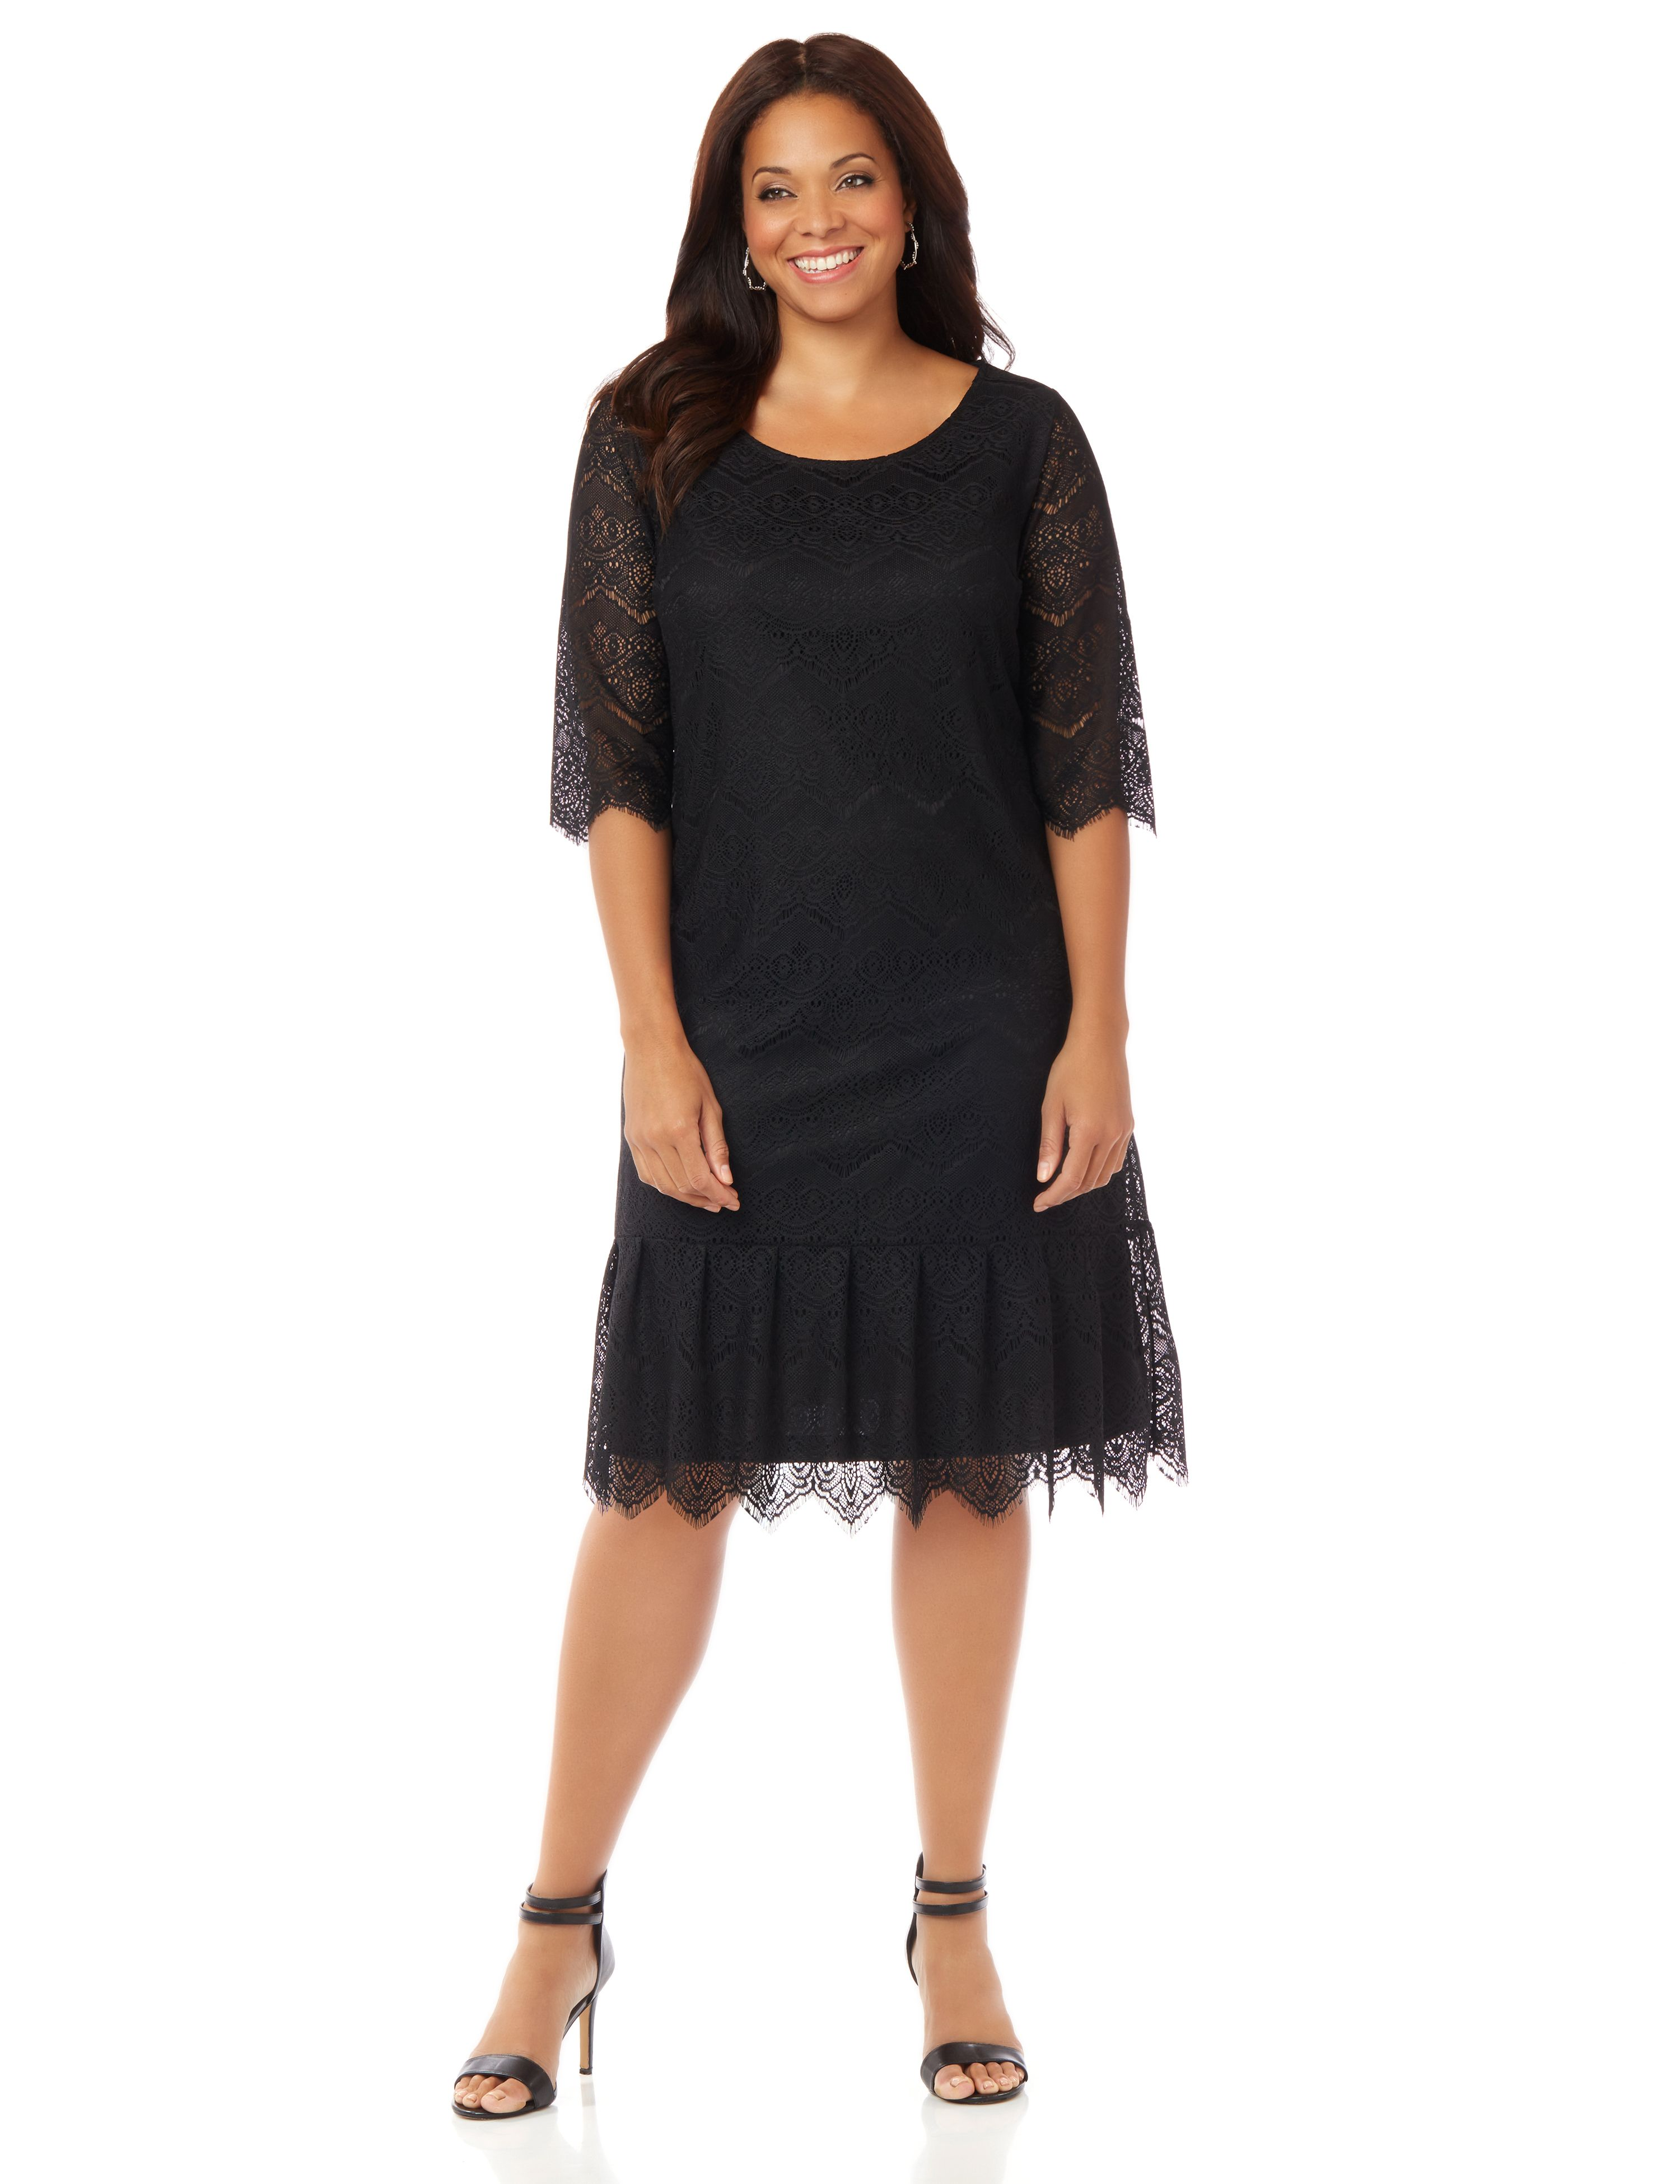 Plus Size Dresses Catherines Plus Size Tops